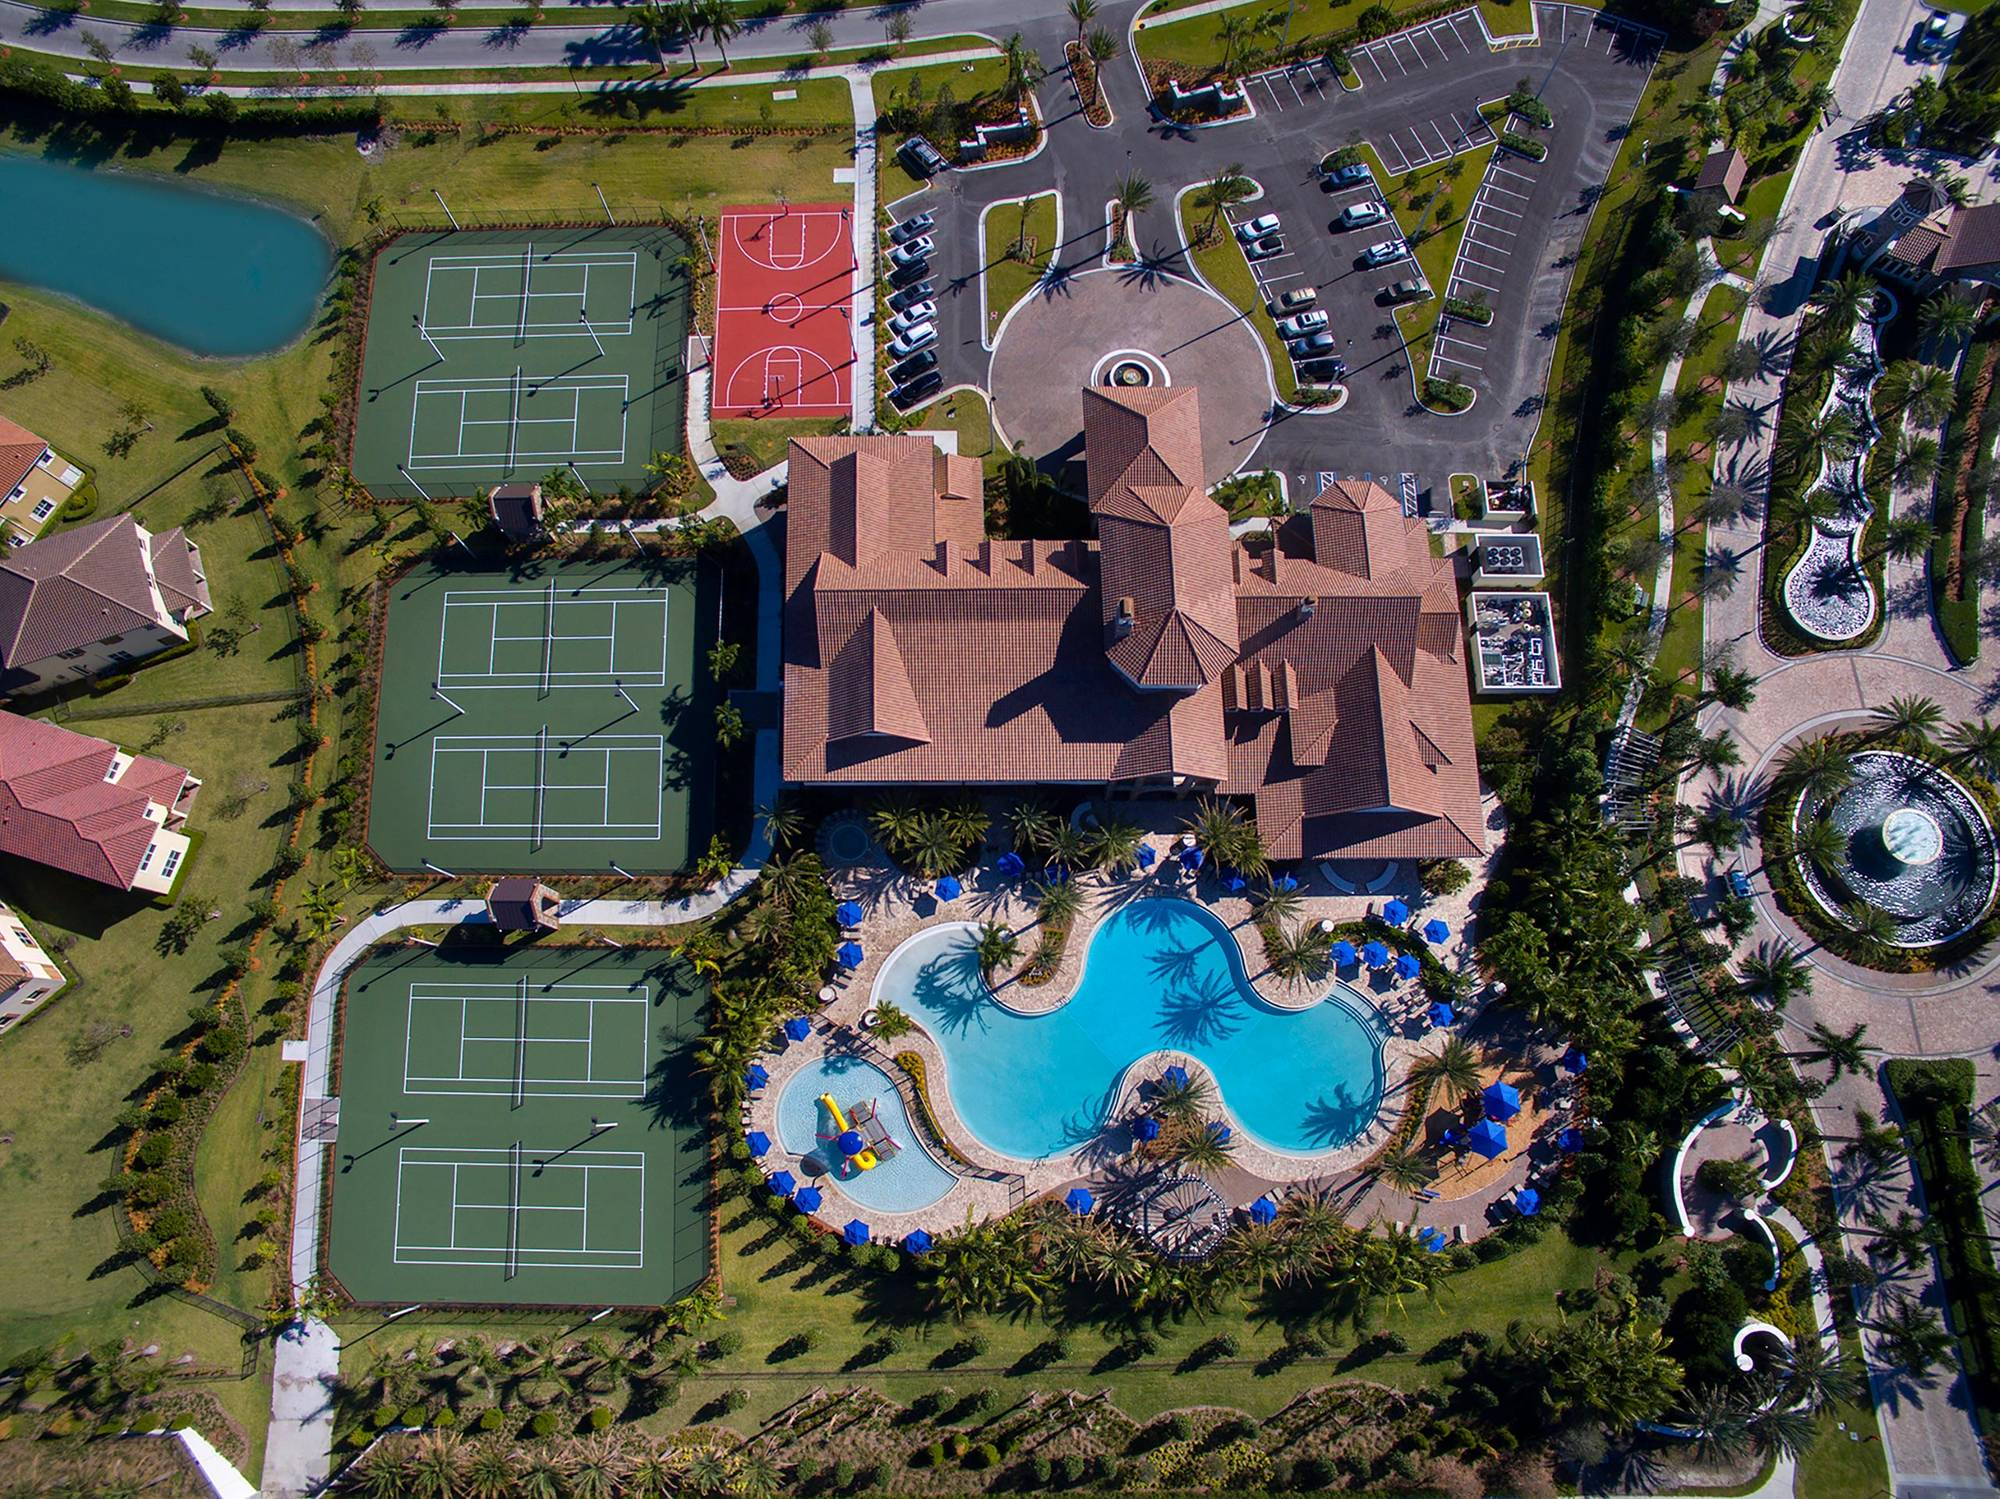 MiraLago-Clubhouse--0399.jpg